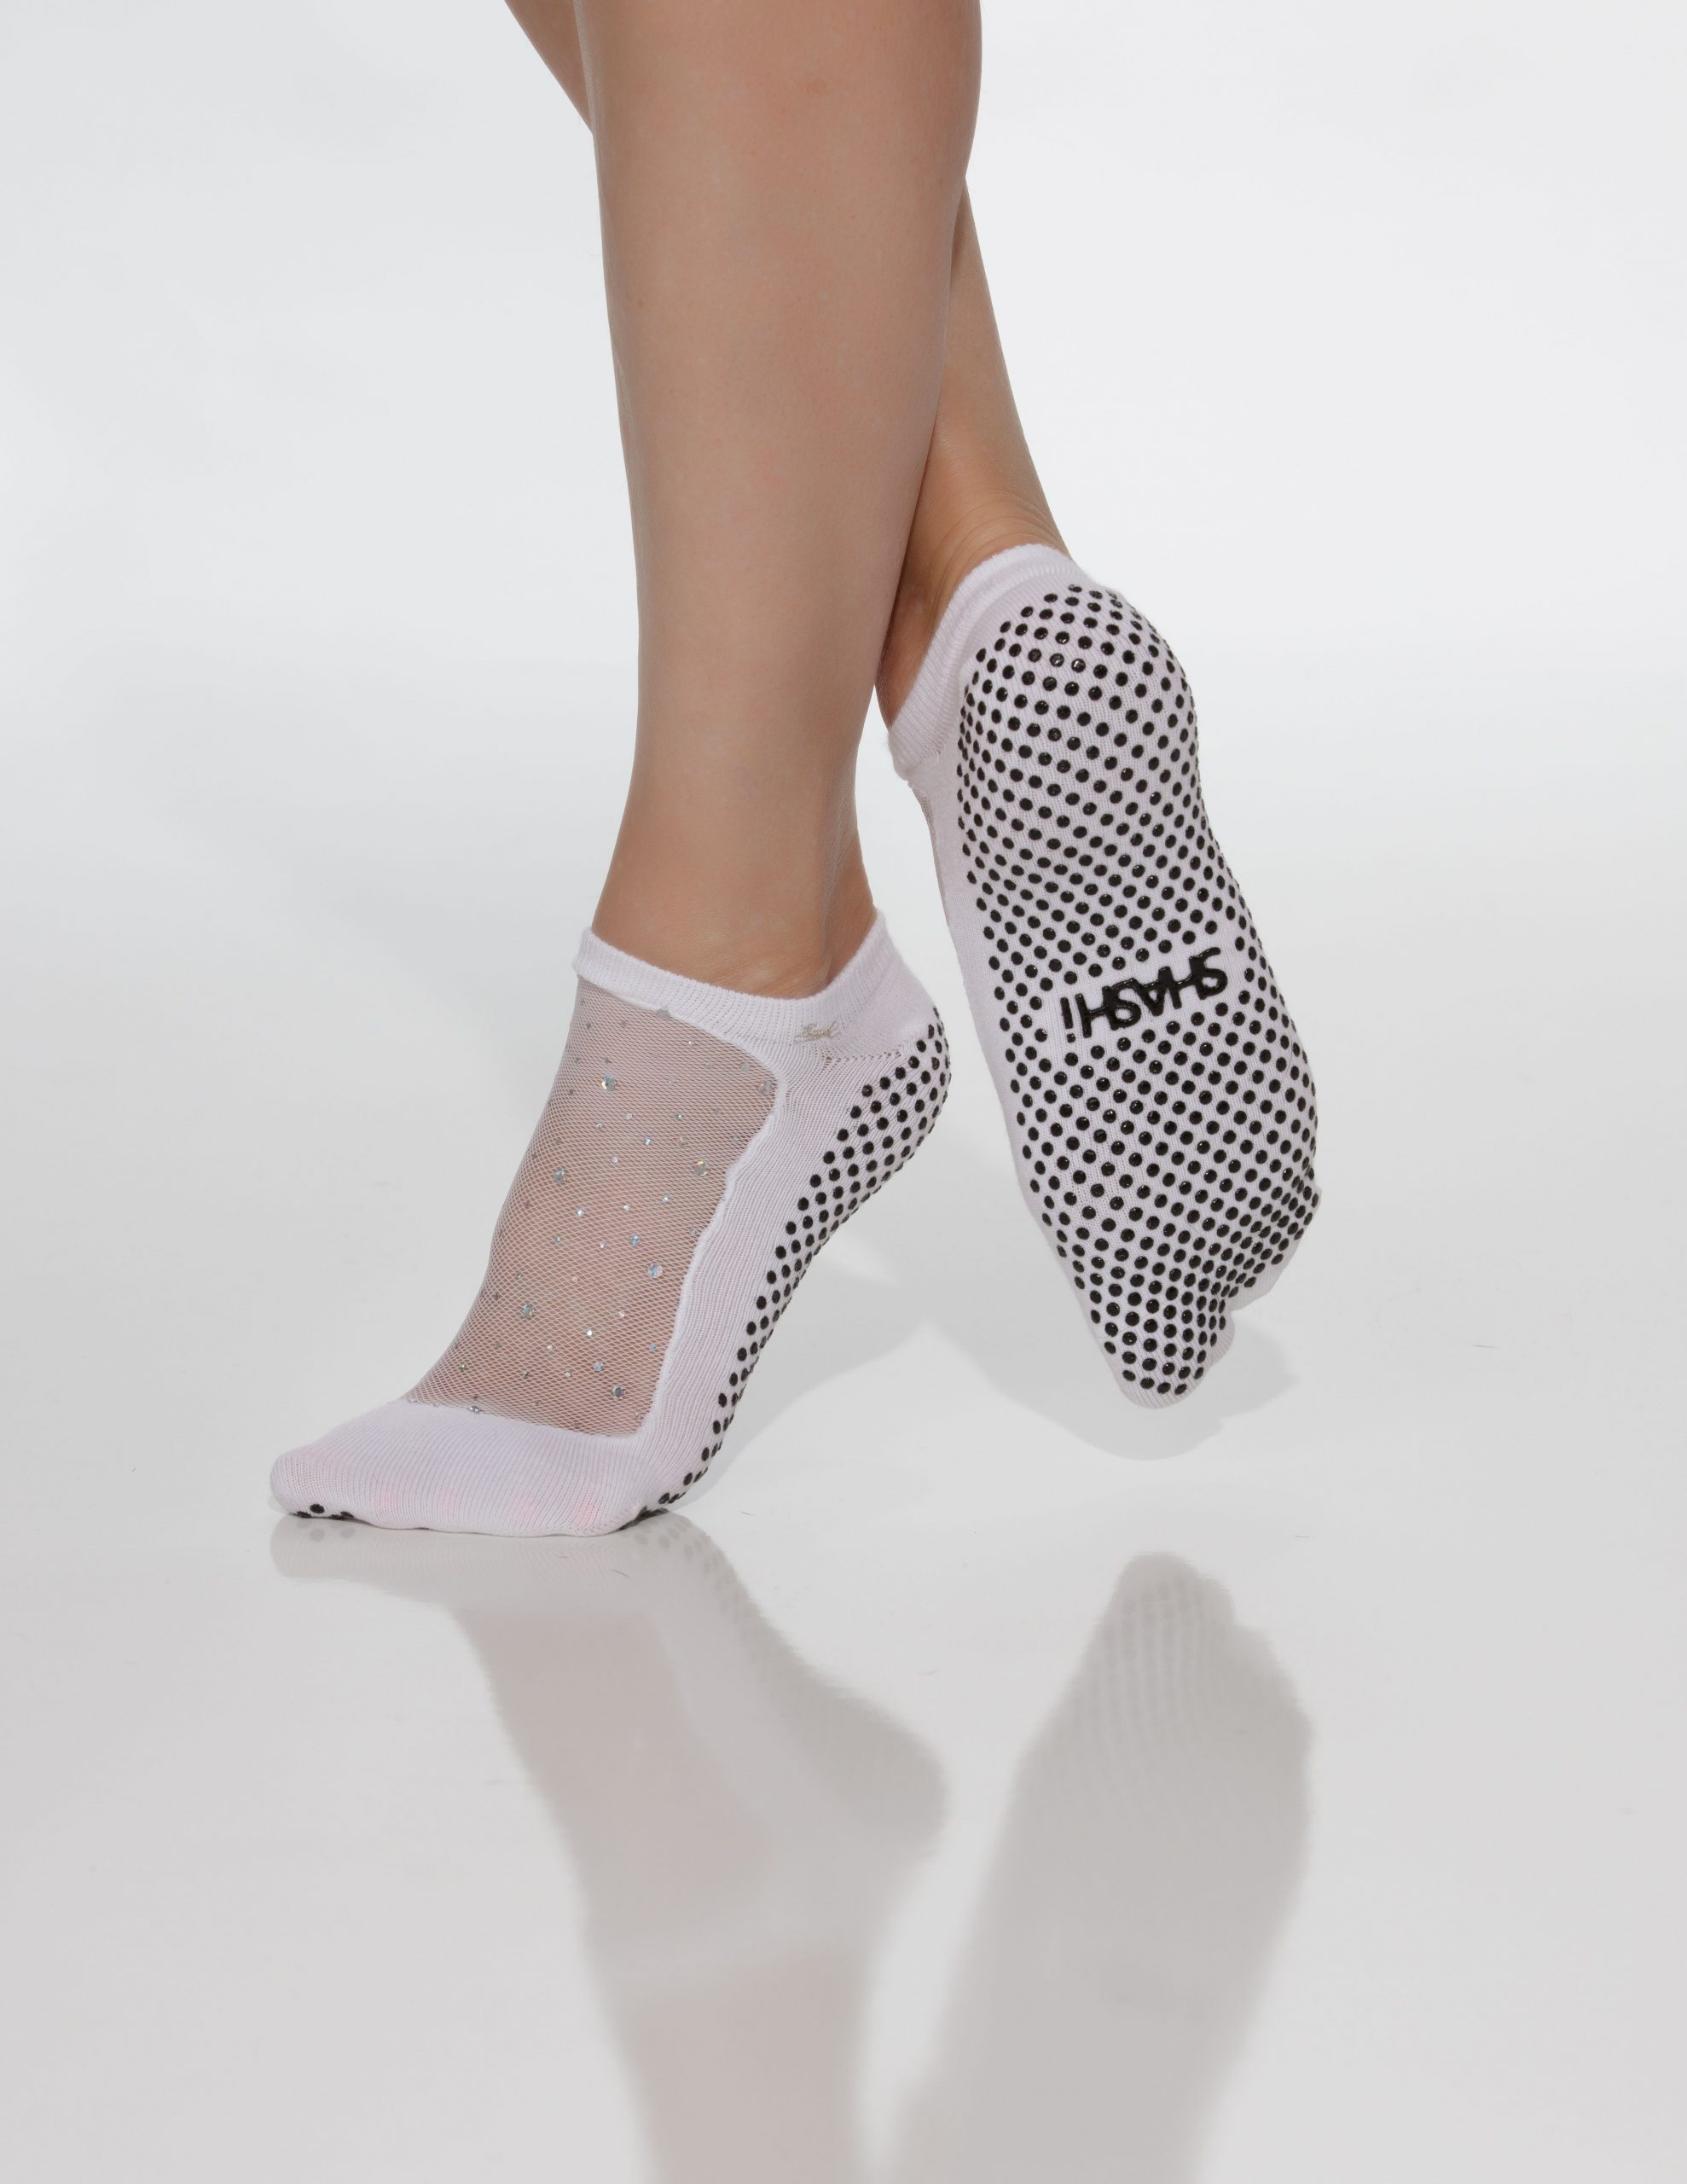 Coolest Socks, step on in!